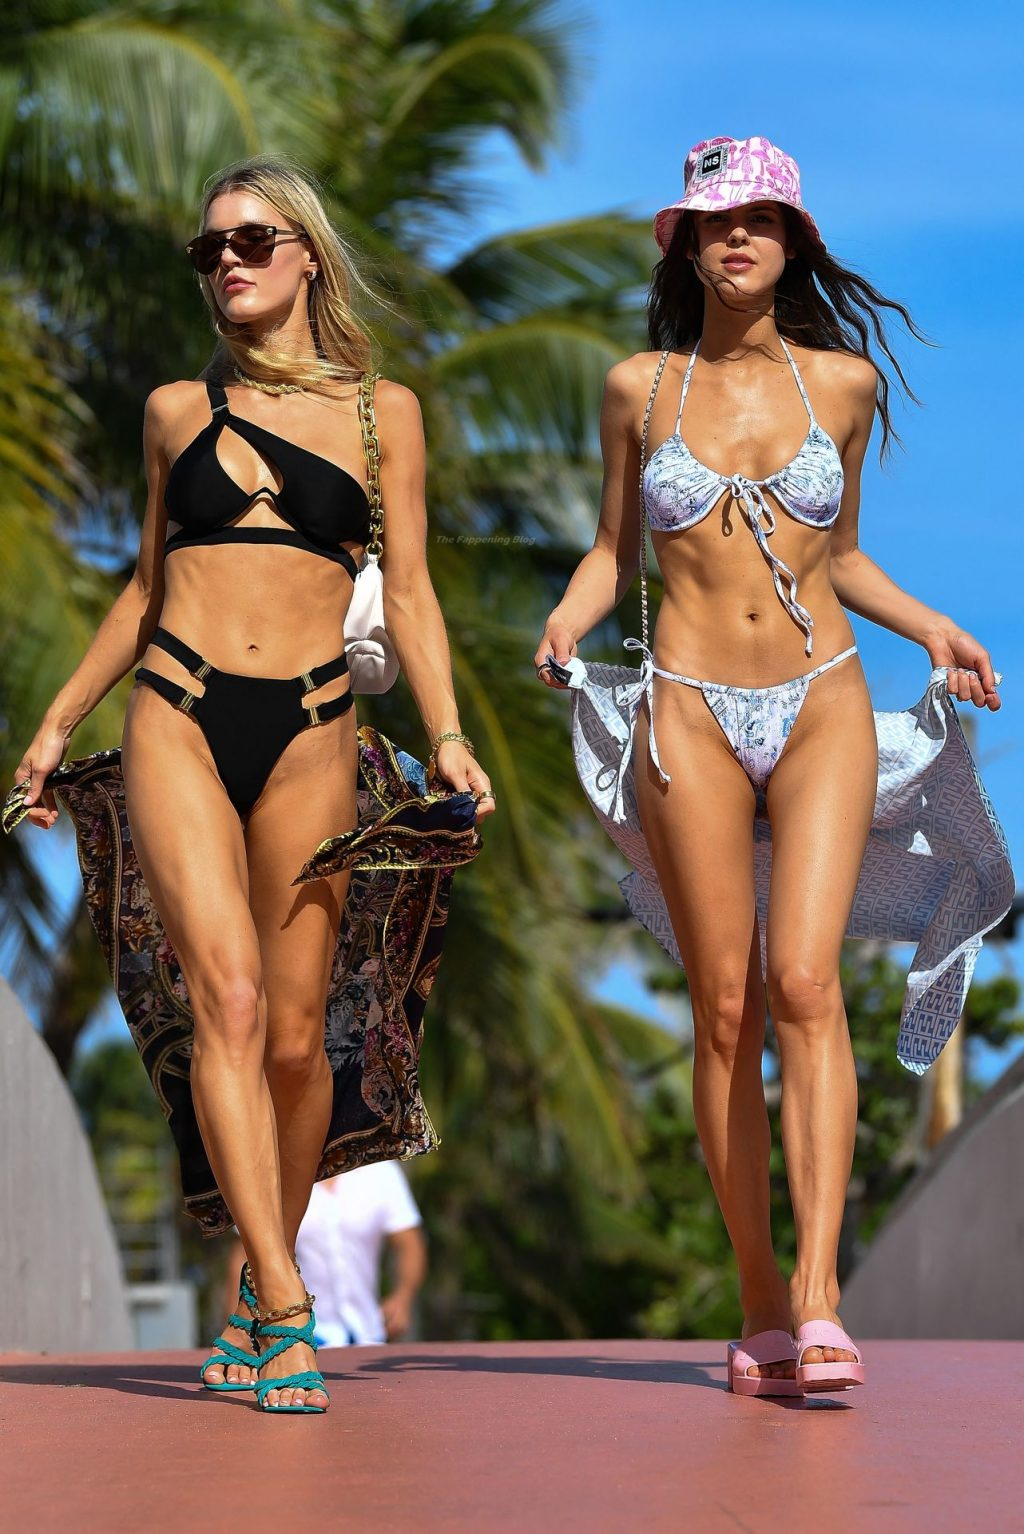 Joy Corrigan Shows Off Her Sexy Body During a Shoot with Her Sister in Miami Beach (92 Photos)